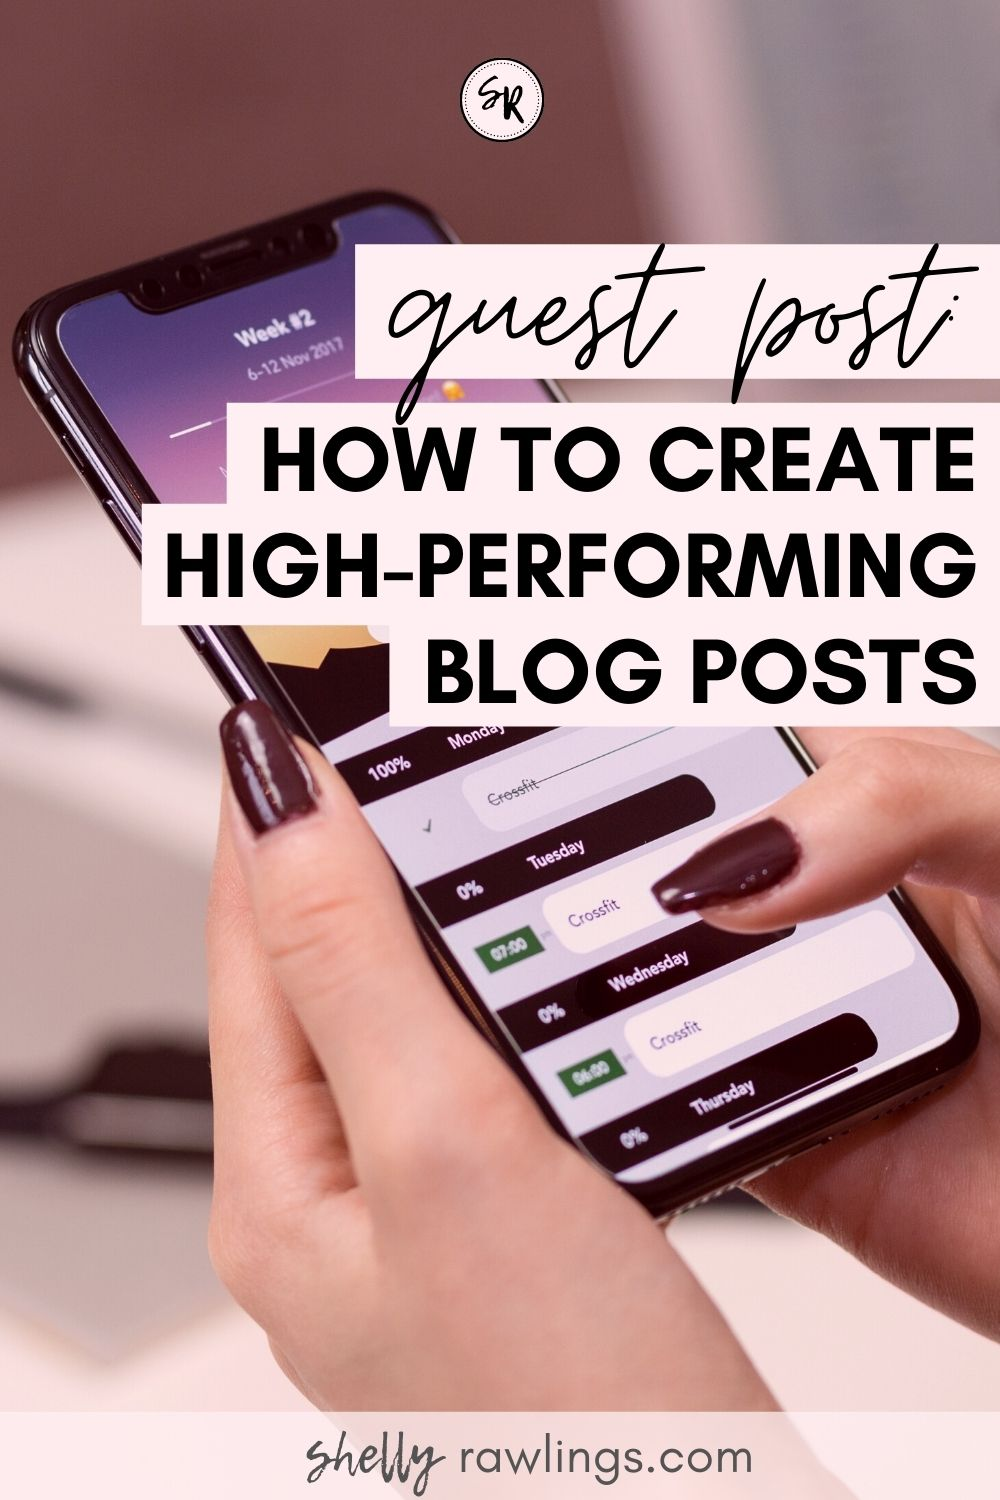 How to Create High-Performing Blog Posts | A Guest Post on ShellyRawlings.com